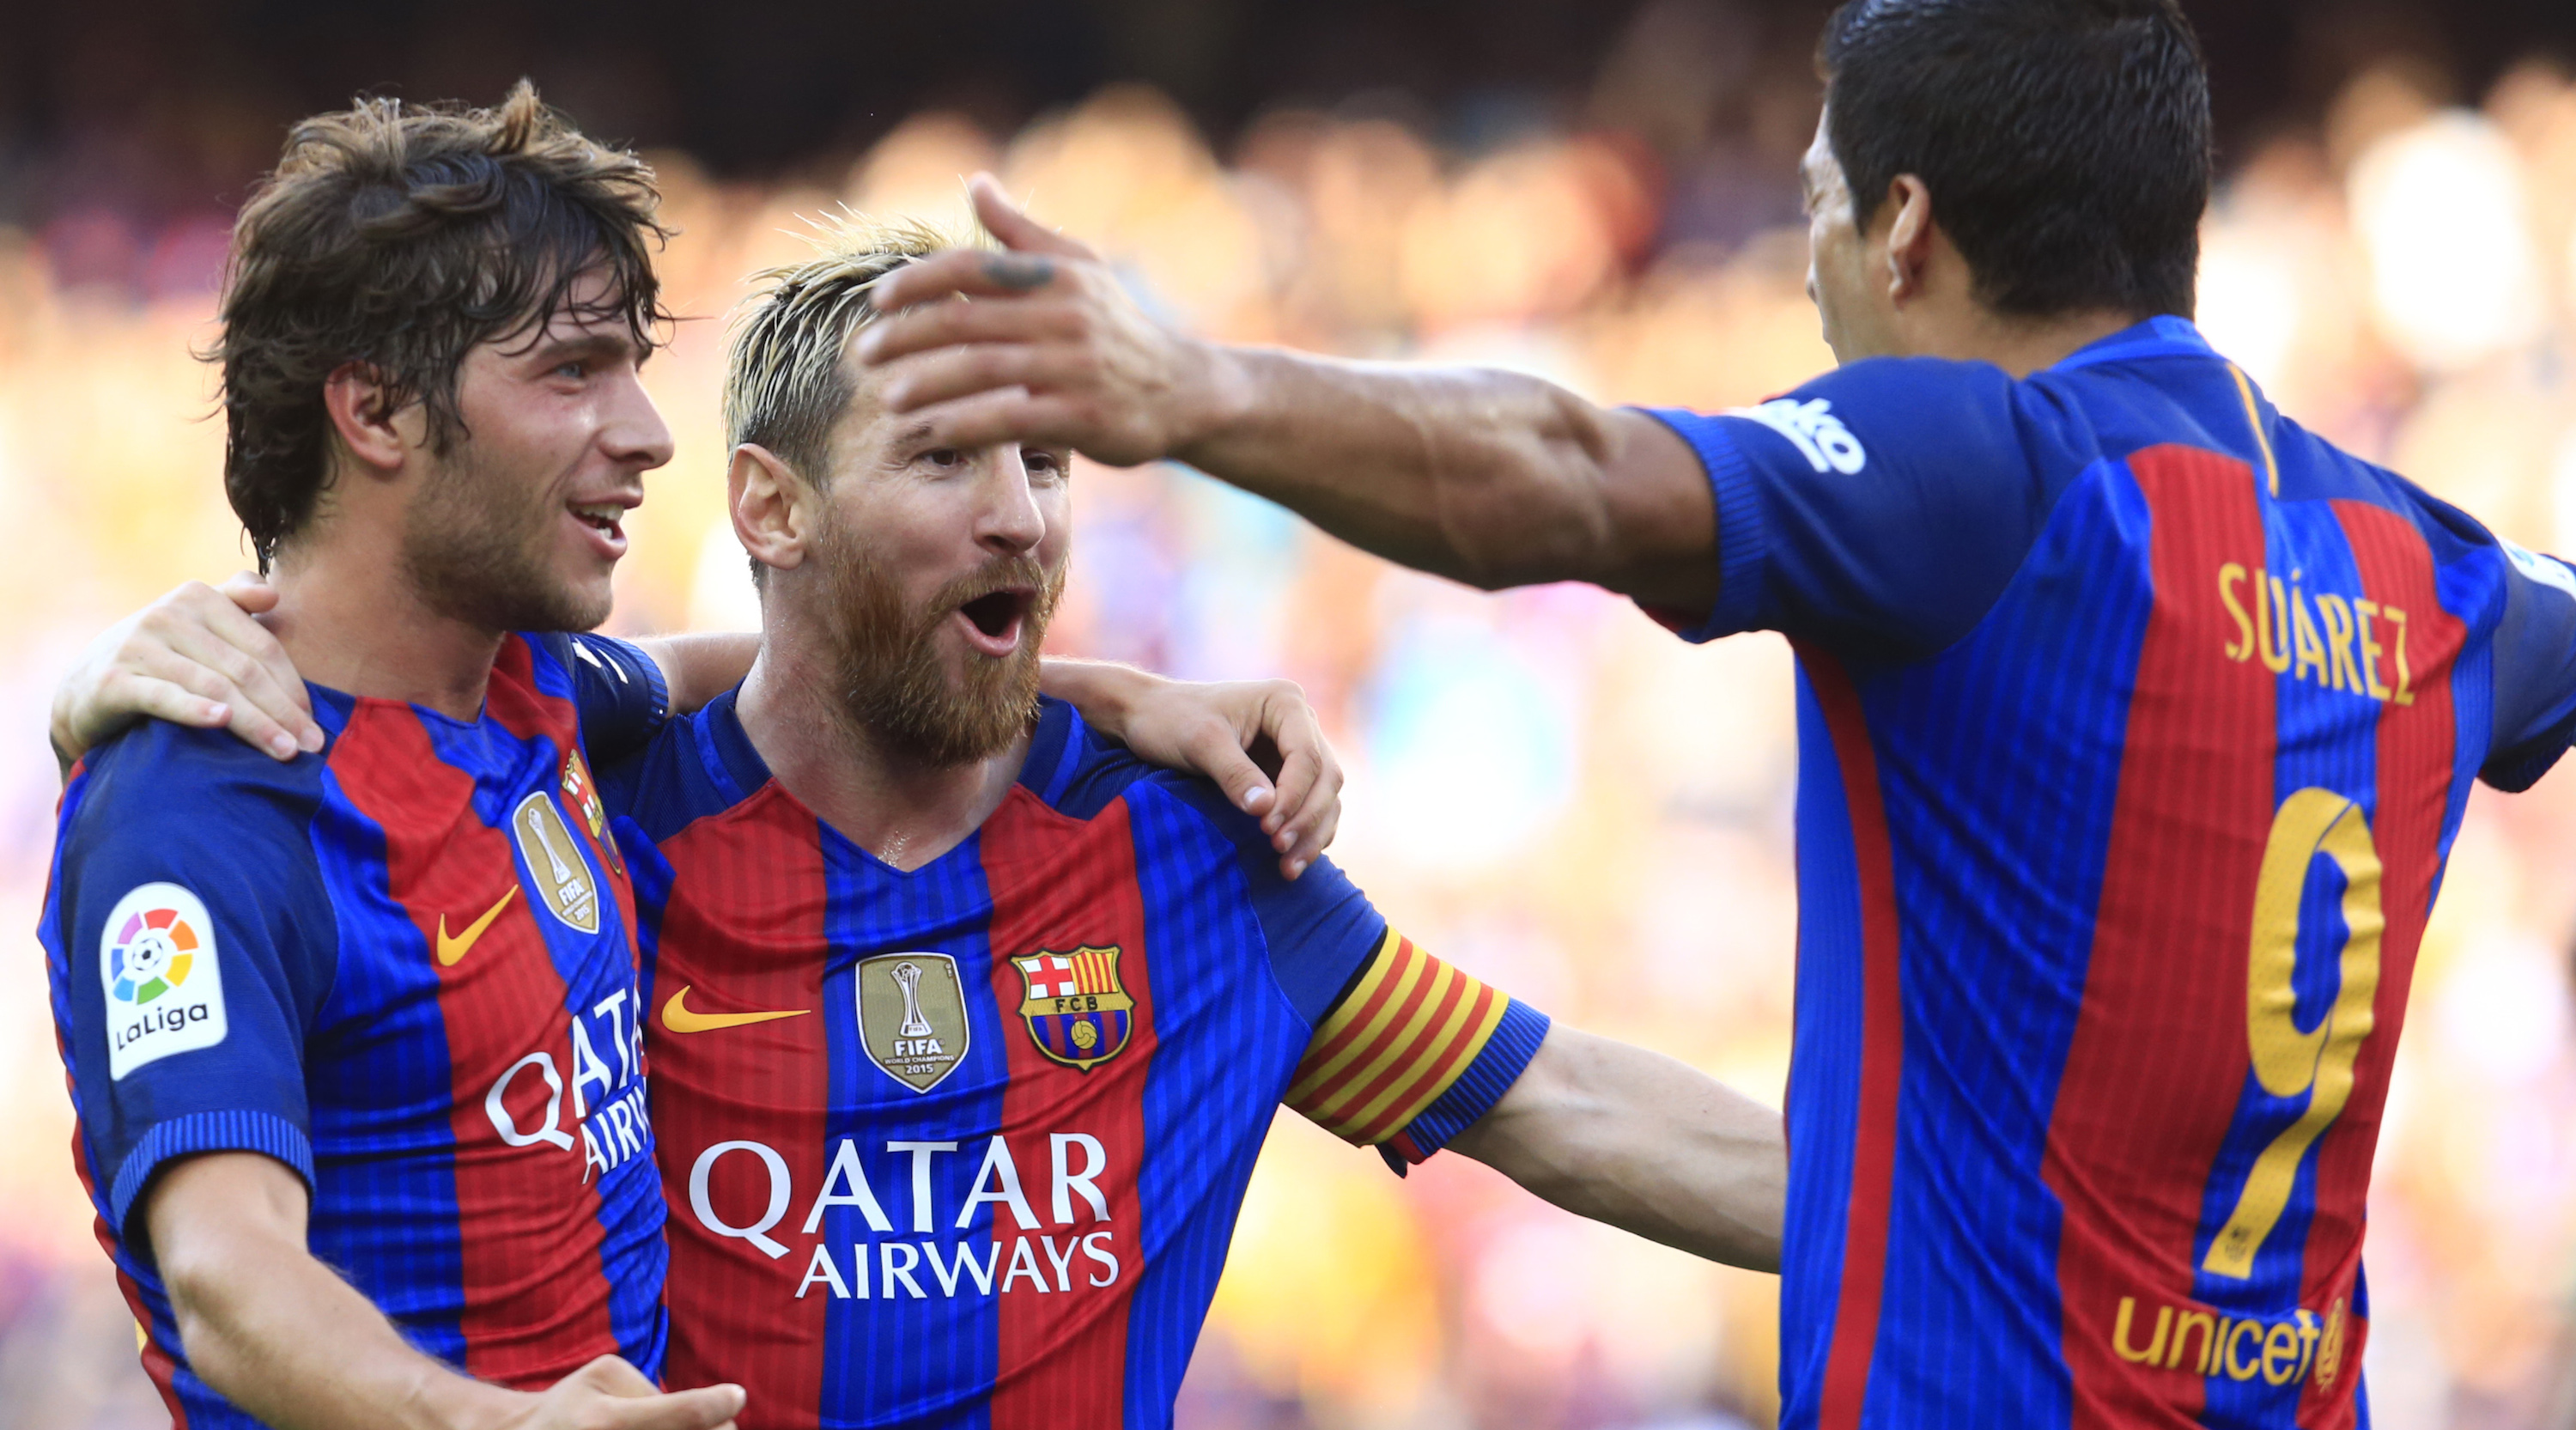 Barcelona's Argentinian forward Lionel Messi (C) celebrates after scoring with Barcelona's midfielder Sergi Roberto (L) and Barcelona's Uruguayan forward Luis Suarez during the Spanish league football match FC Barcelona vs Real Betis Balompie at the Camp Nou stadium in Barcelona on August 20, 2016. / AFP / PAU BARRENA (Photo credit should read PAU BARRENA/AFP/Getty Images)